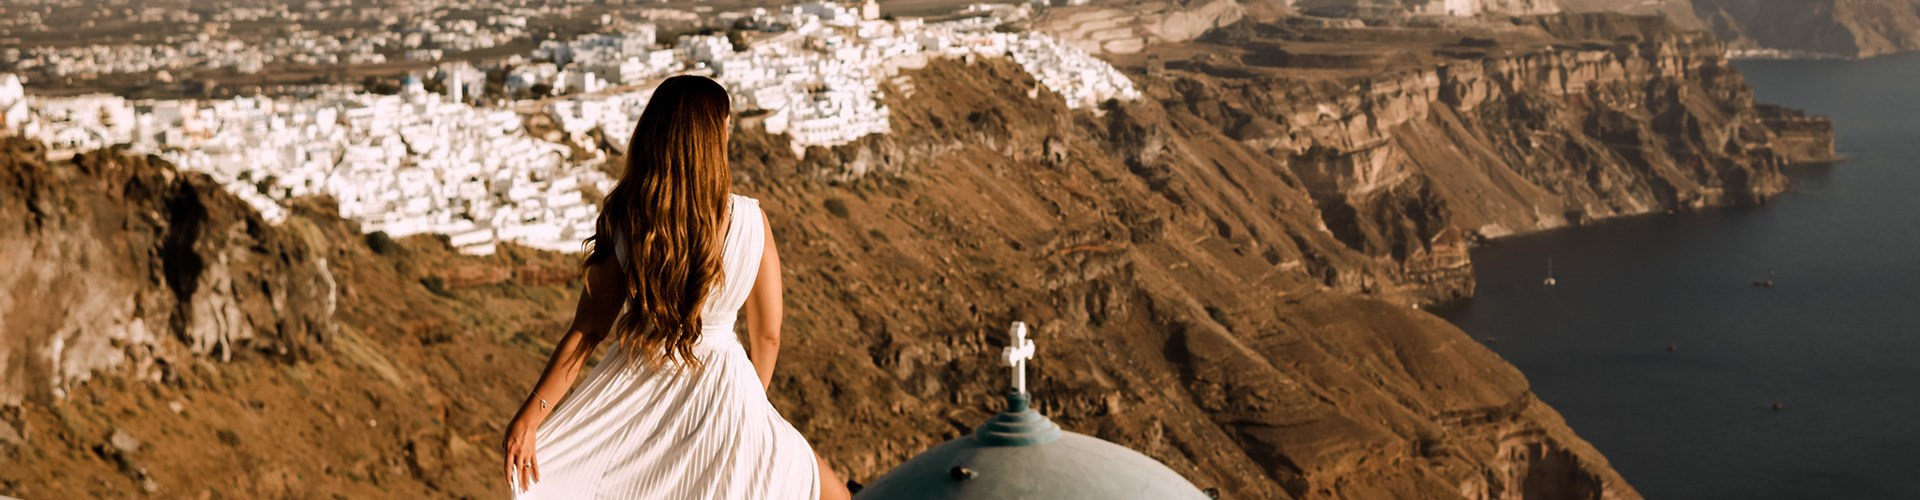 Photo of Hire a Professional Photographer in Santorini for a Photo Shoot at the Island's Best Scenic Spots